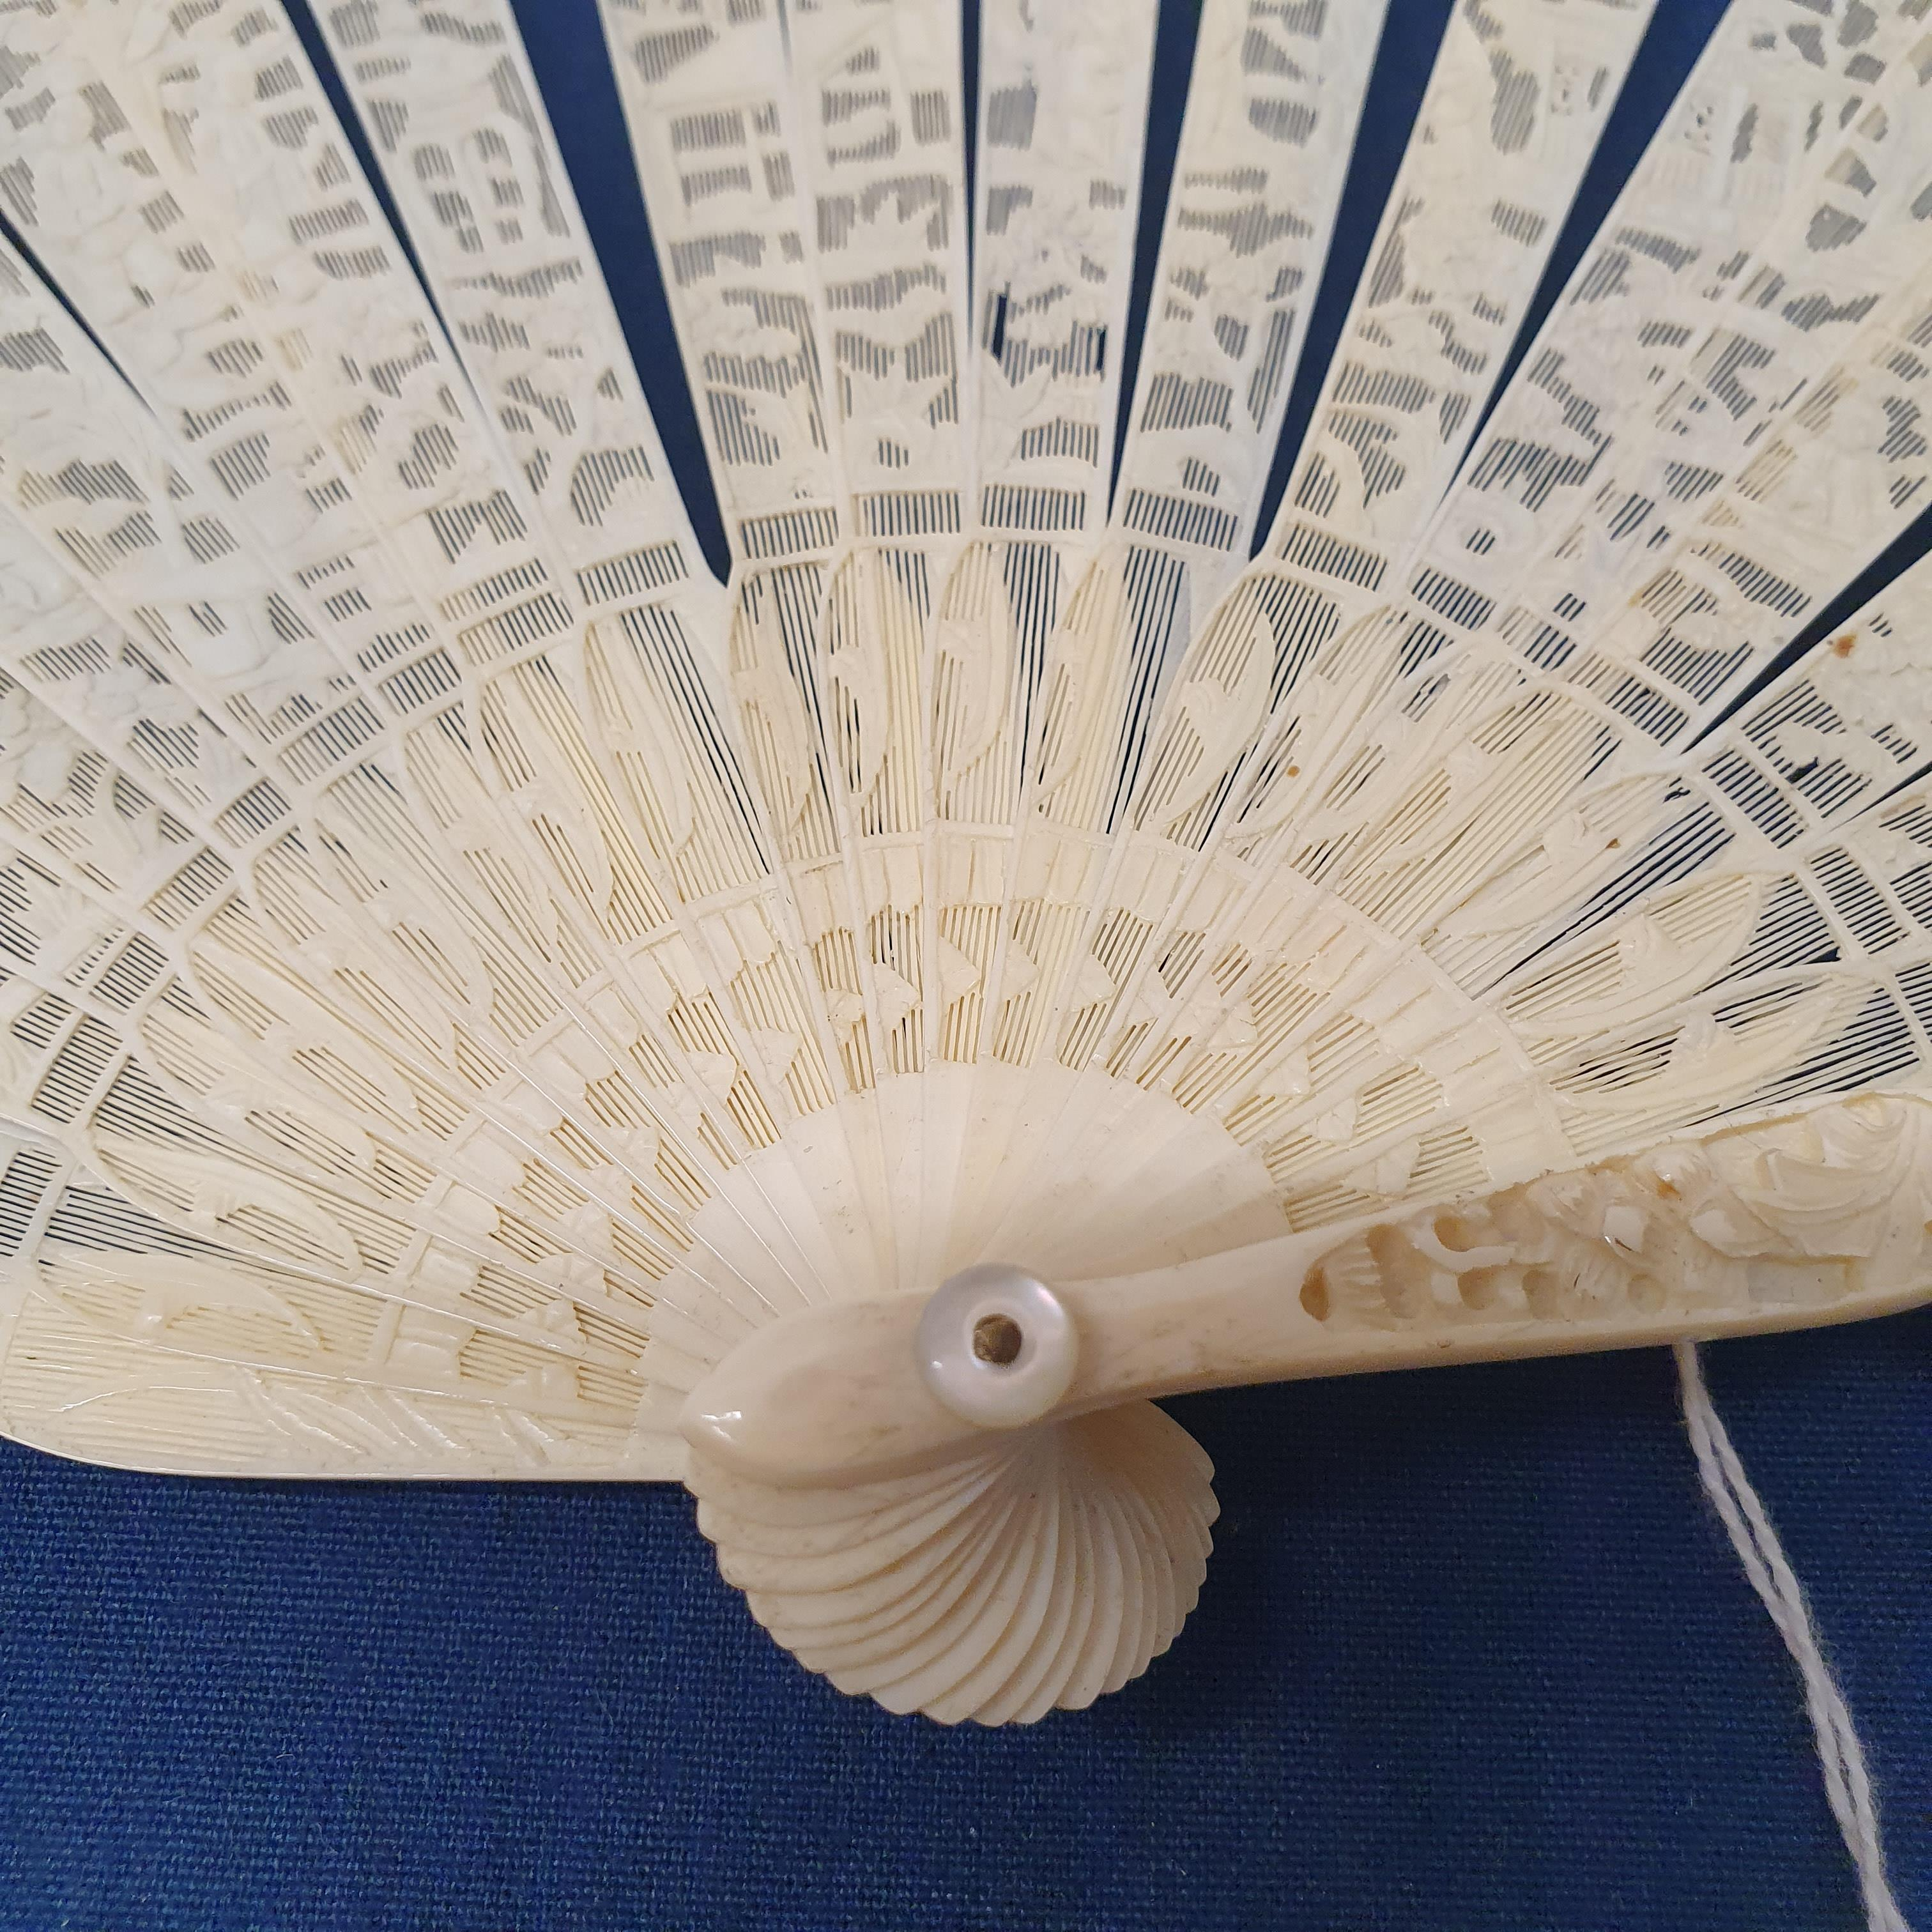 A Chinese ivory brisee fan, two others, and a similar fan with silk embroidered decoration, in a - Image 40 of 47